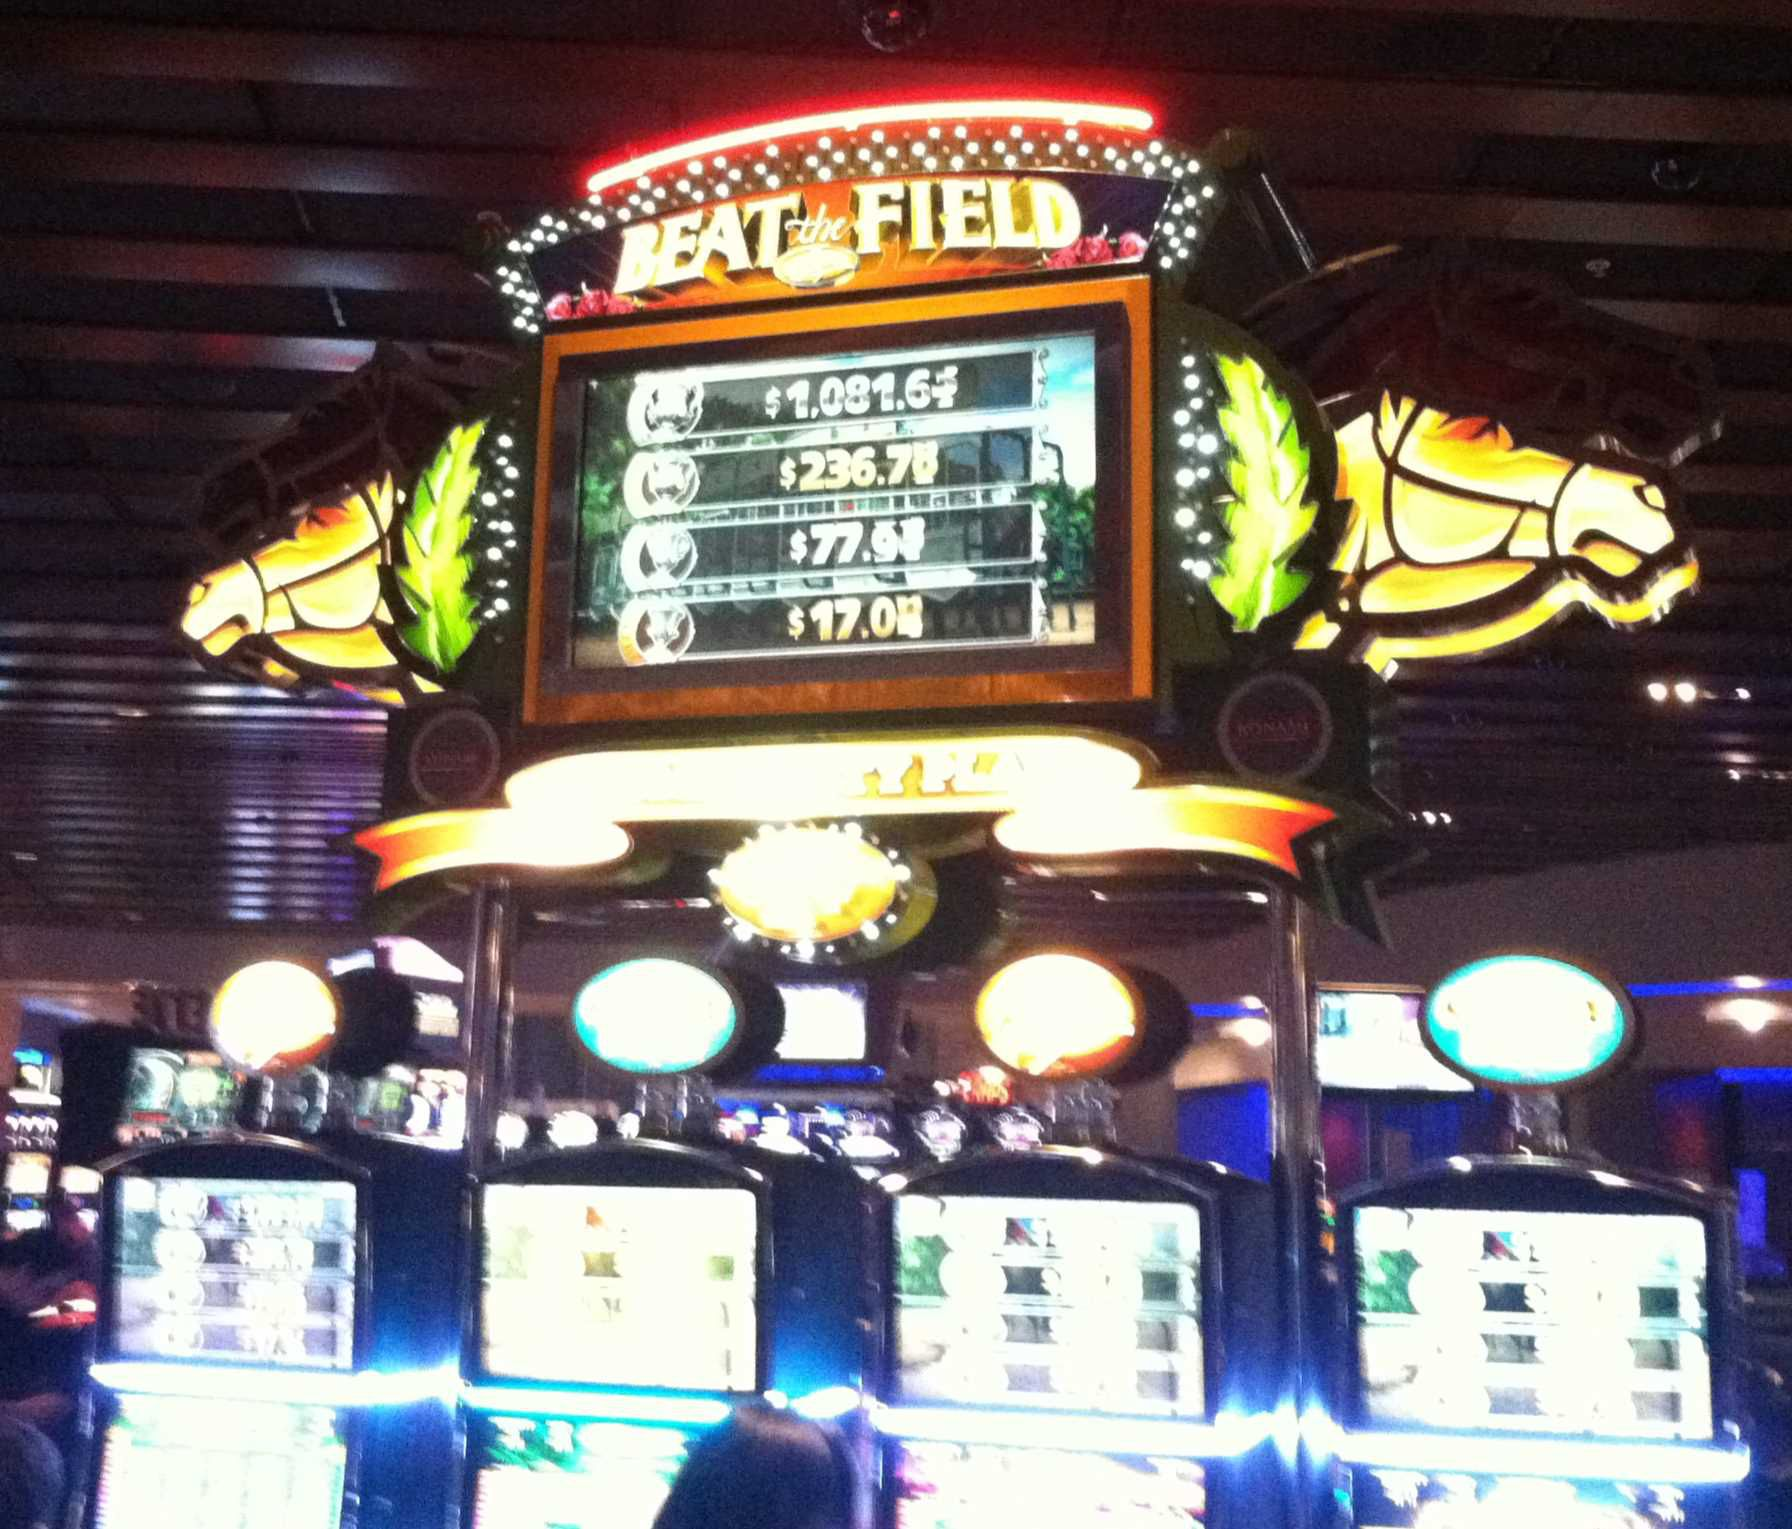 3 Ways to Find a Loose Slot Machine at a Casino - wikiHow